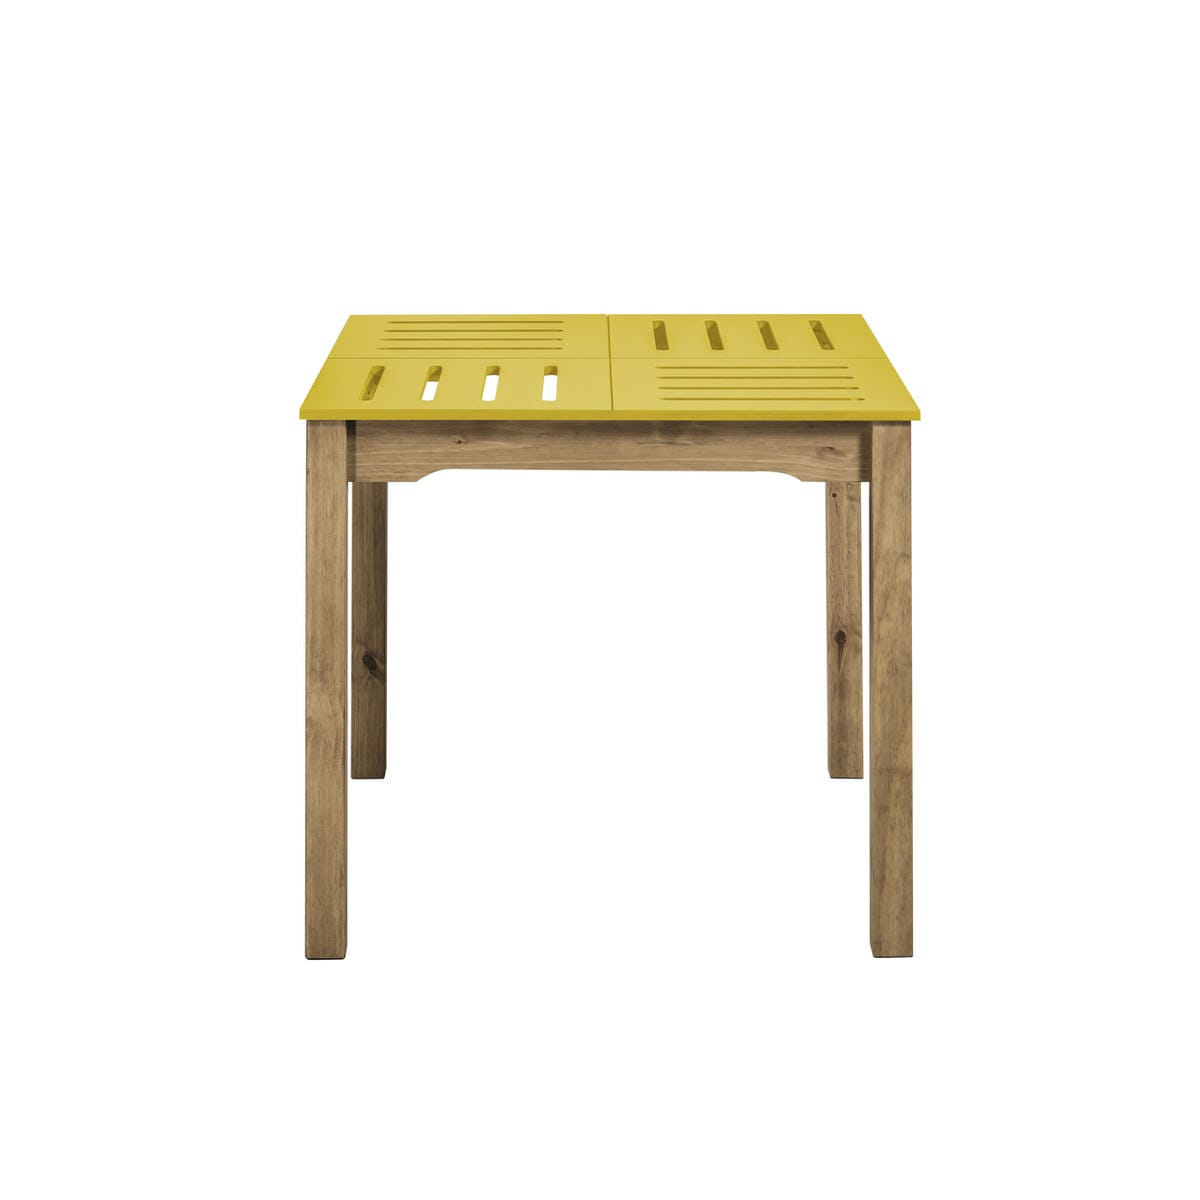 Stillwell Mid Century Modern 31 5 Inch Yellow Natural Wood Square